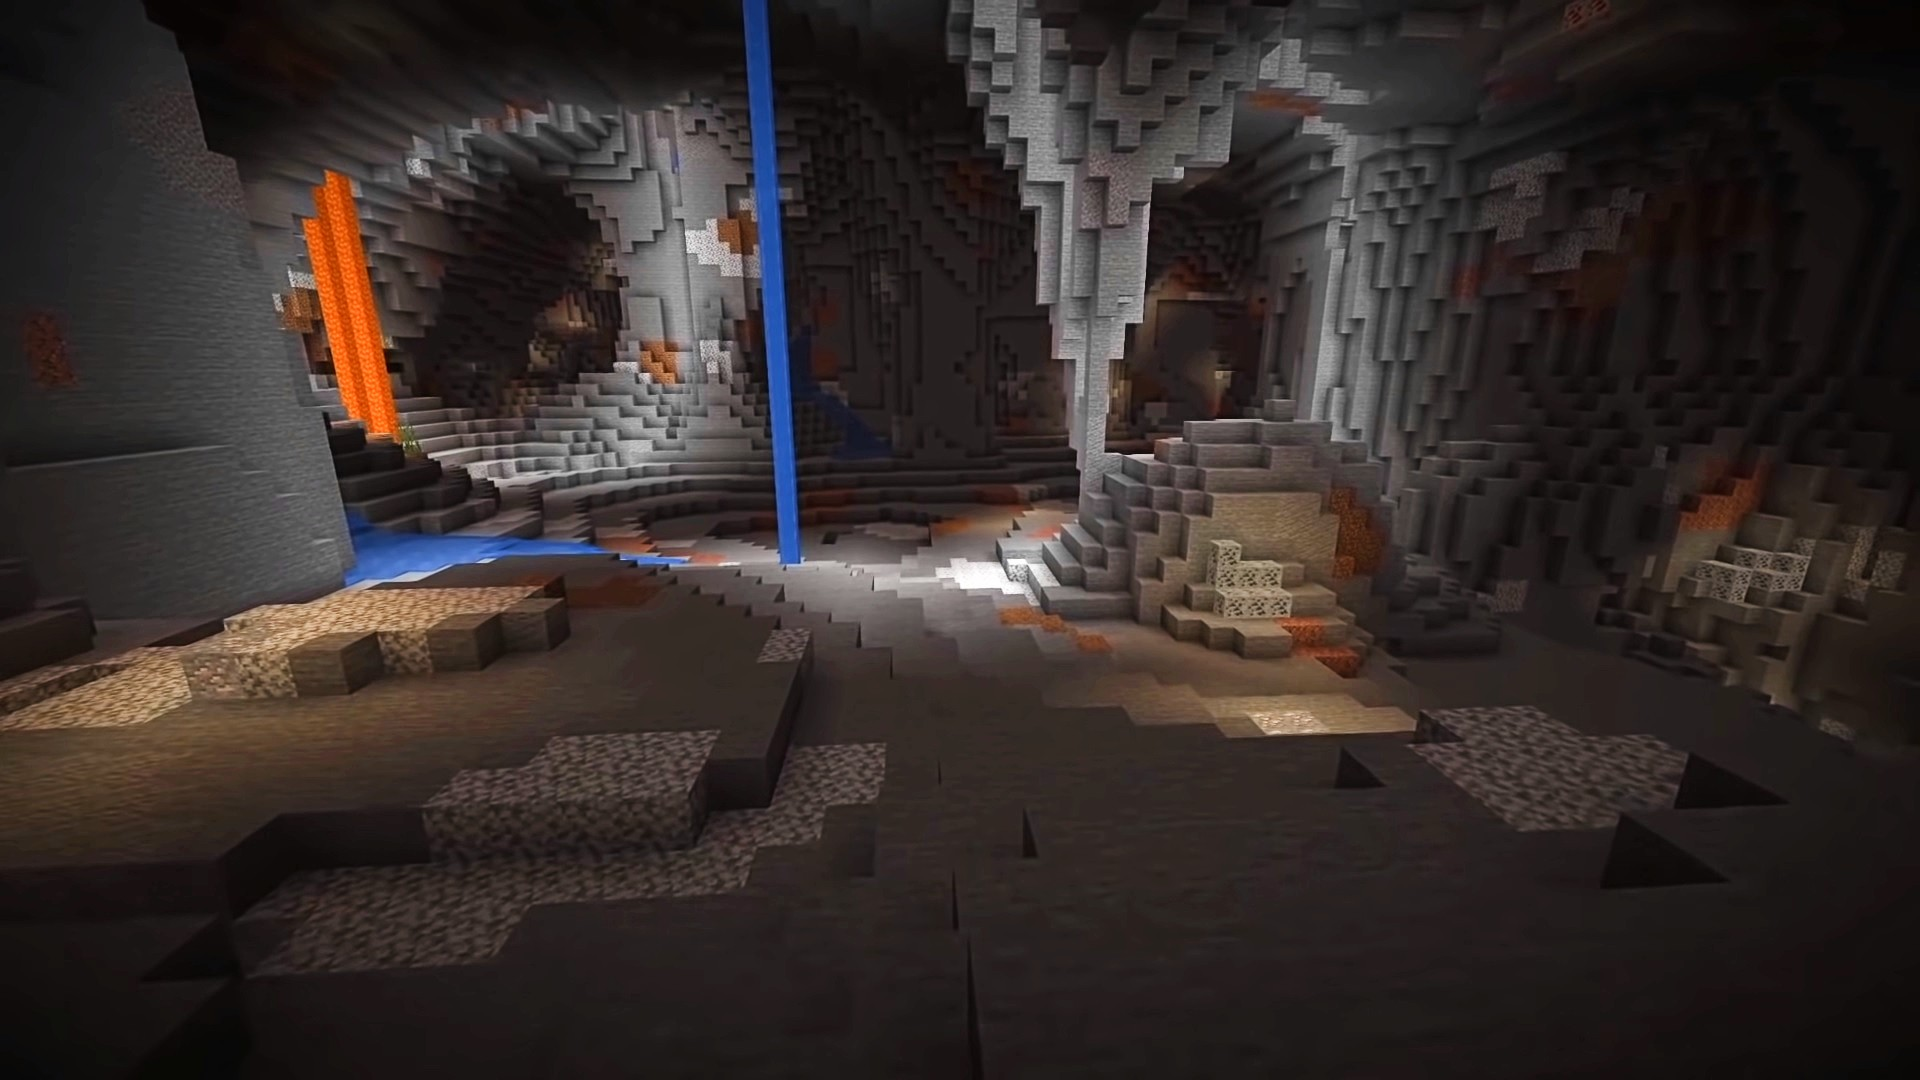 Minecraft is closing in on 140 million monthly active users